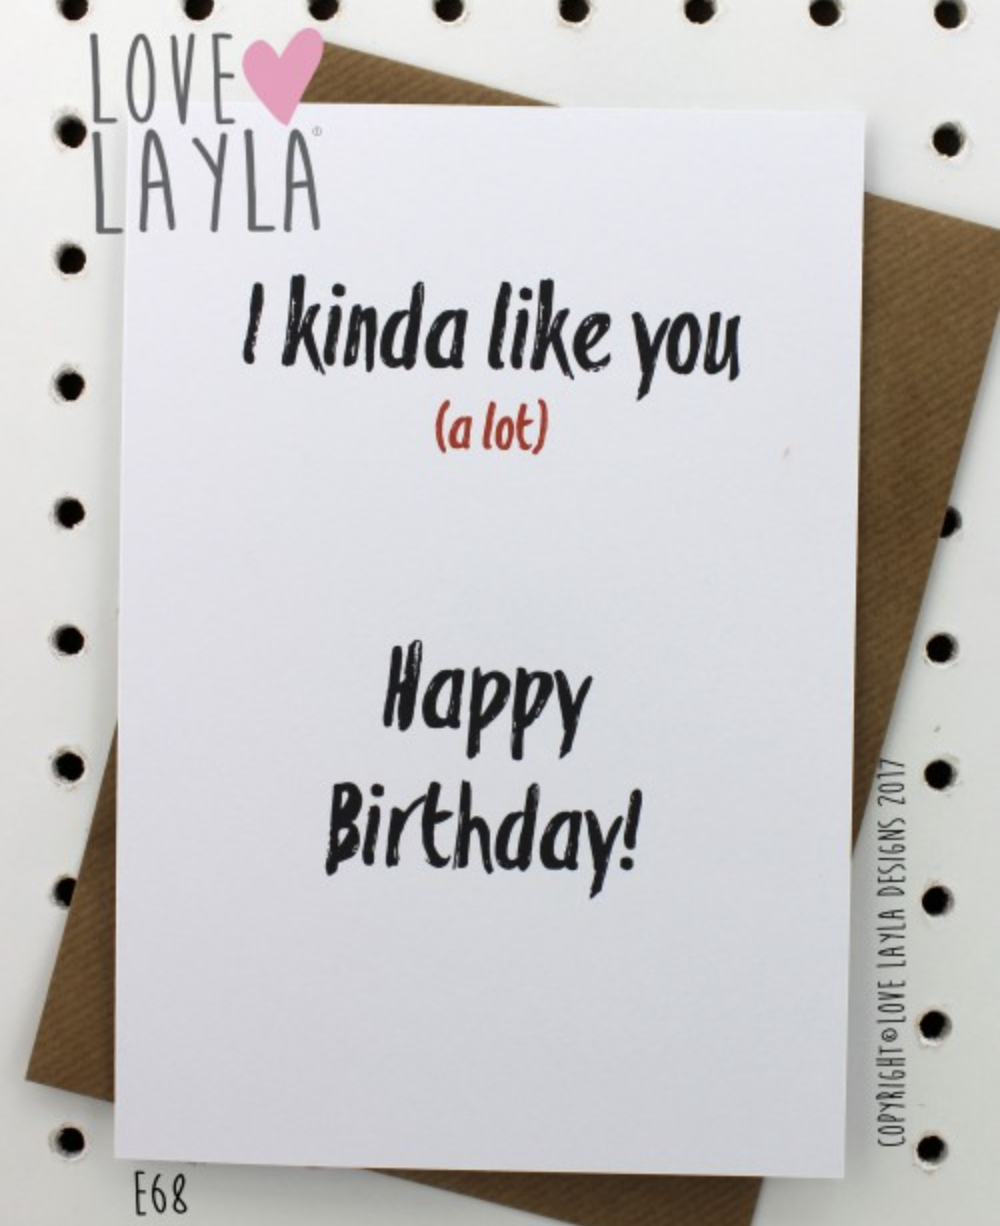 ... #onthedownlow #happybirthday #birthday #lovelaylaaustralia #greetingcards #funnycards #funny #stayathomemum To buy this card, search E68 via our website